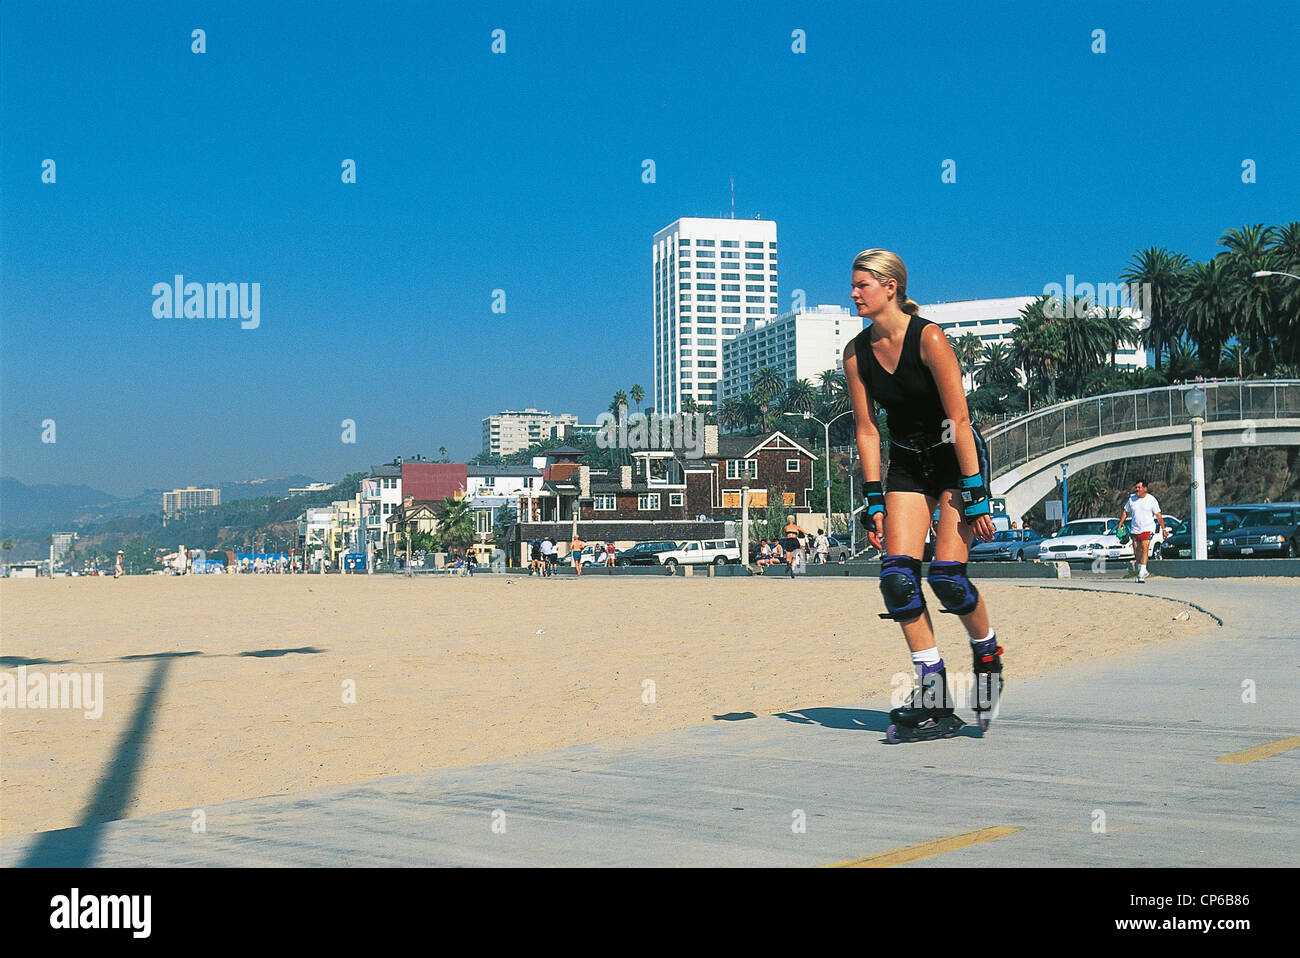 Roller skating los angeles - Stock Photo United States Of America California Los Angeles Santa Monica Roller Skate Girl With The Long Beach Cycle Path